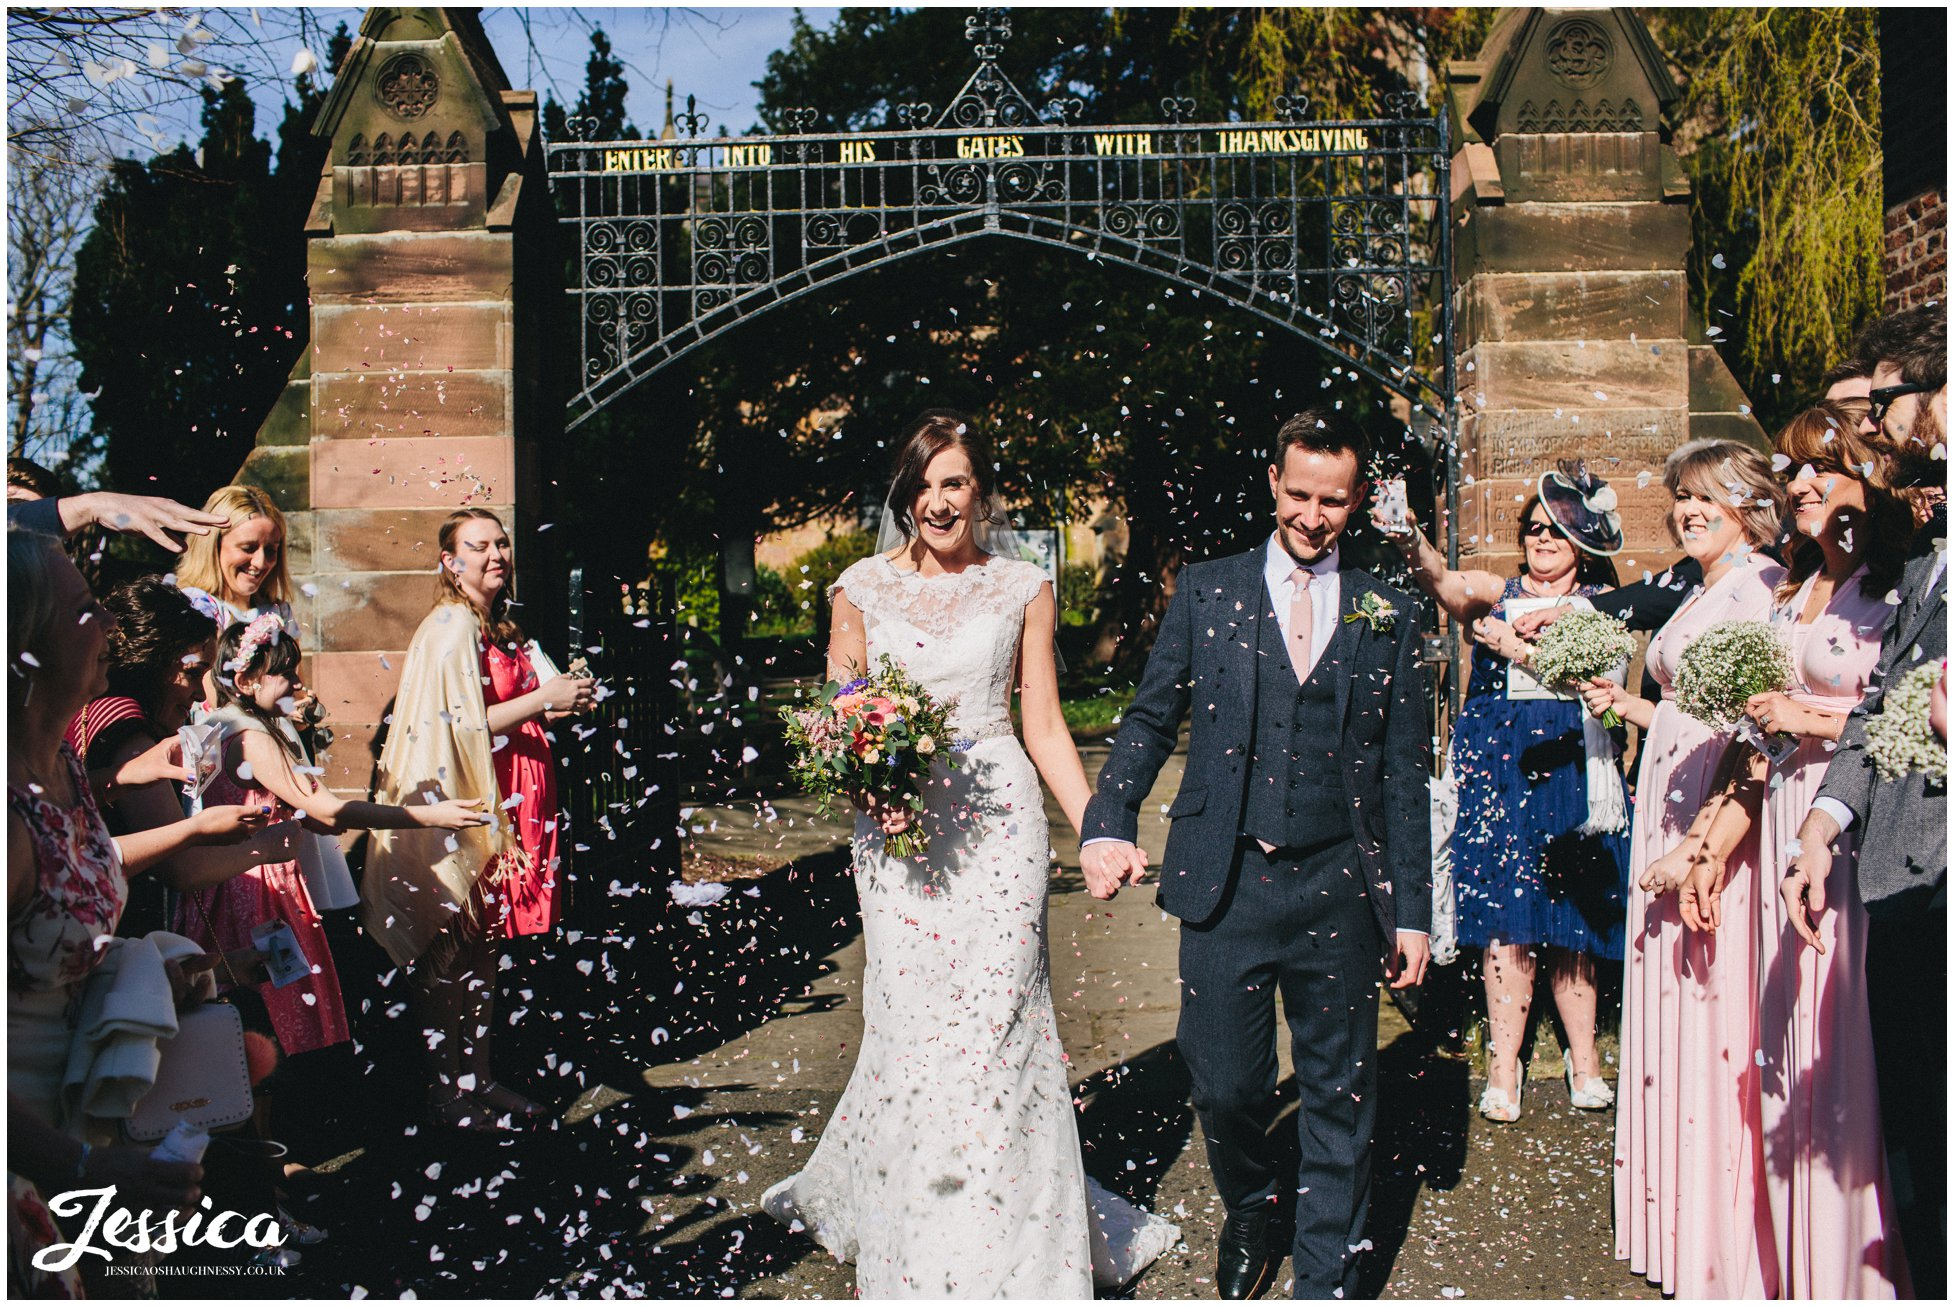 guests throw confetti and the bride and groom leave for their reception